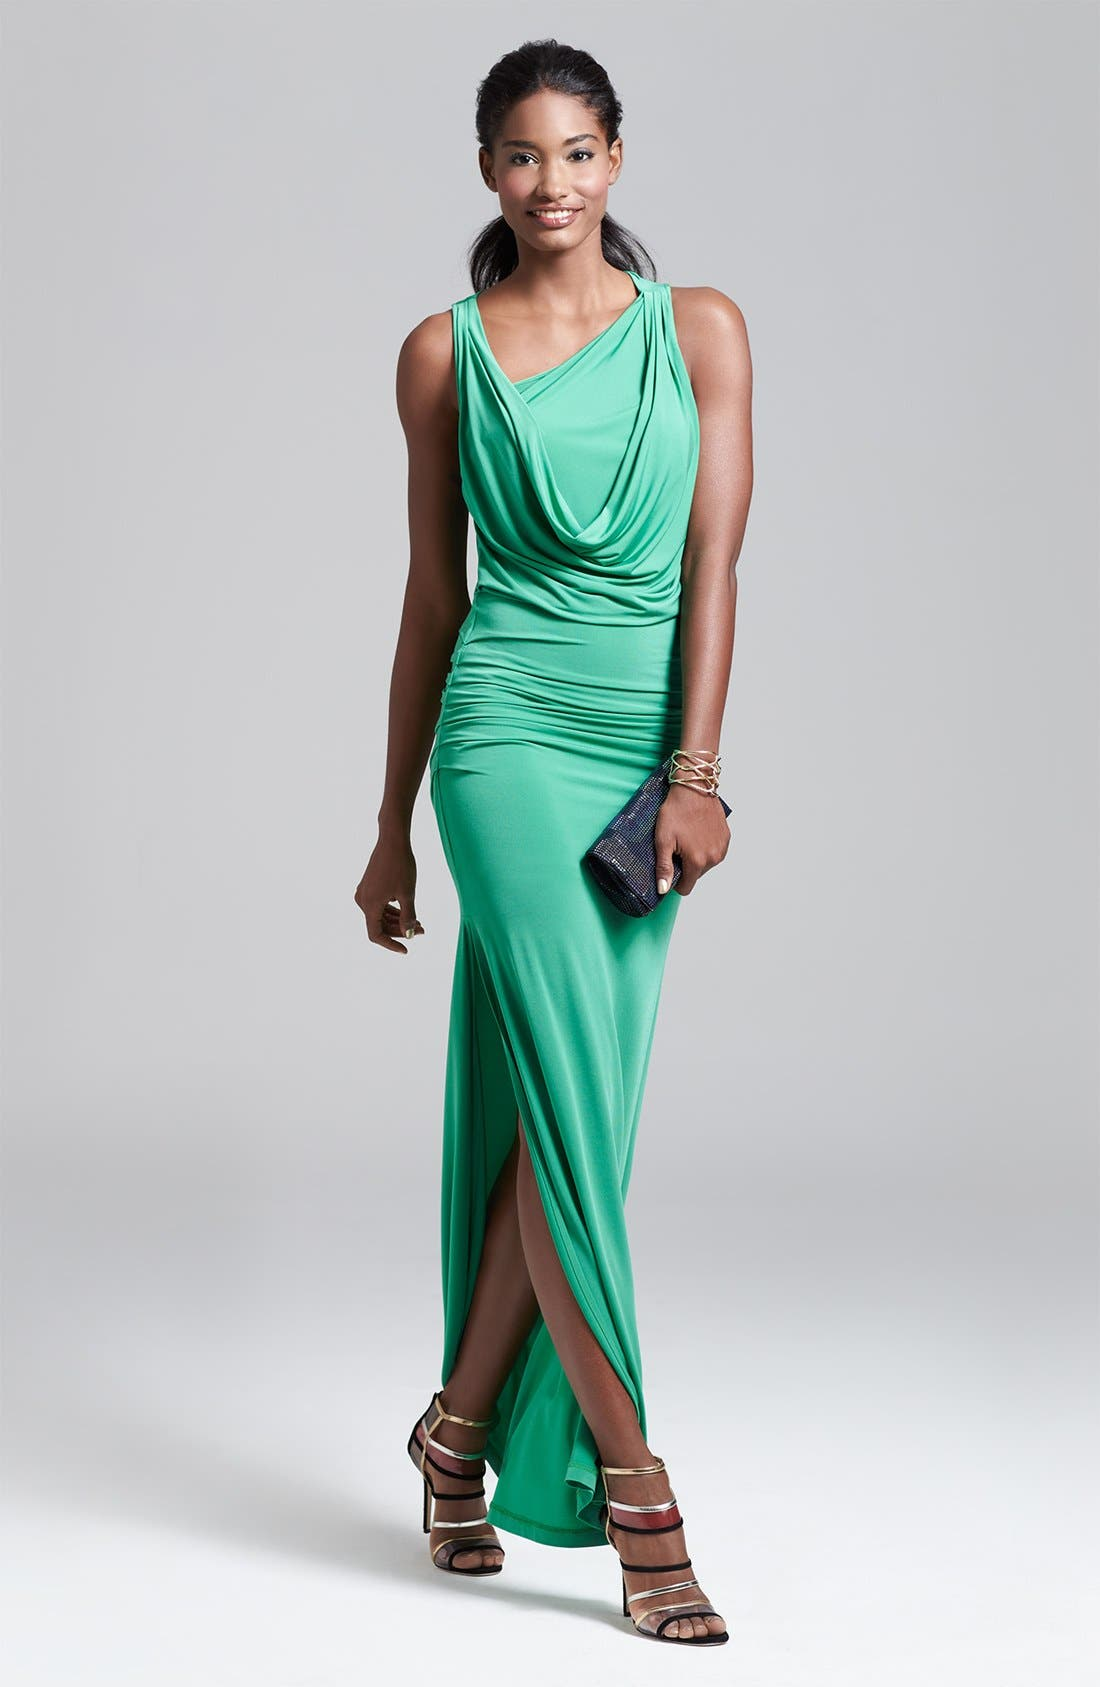 Main Image - BCBGMAXAZRIA Jersey Gown & Accessories